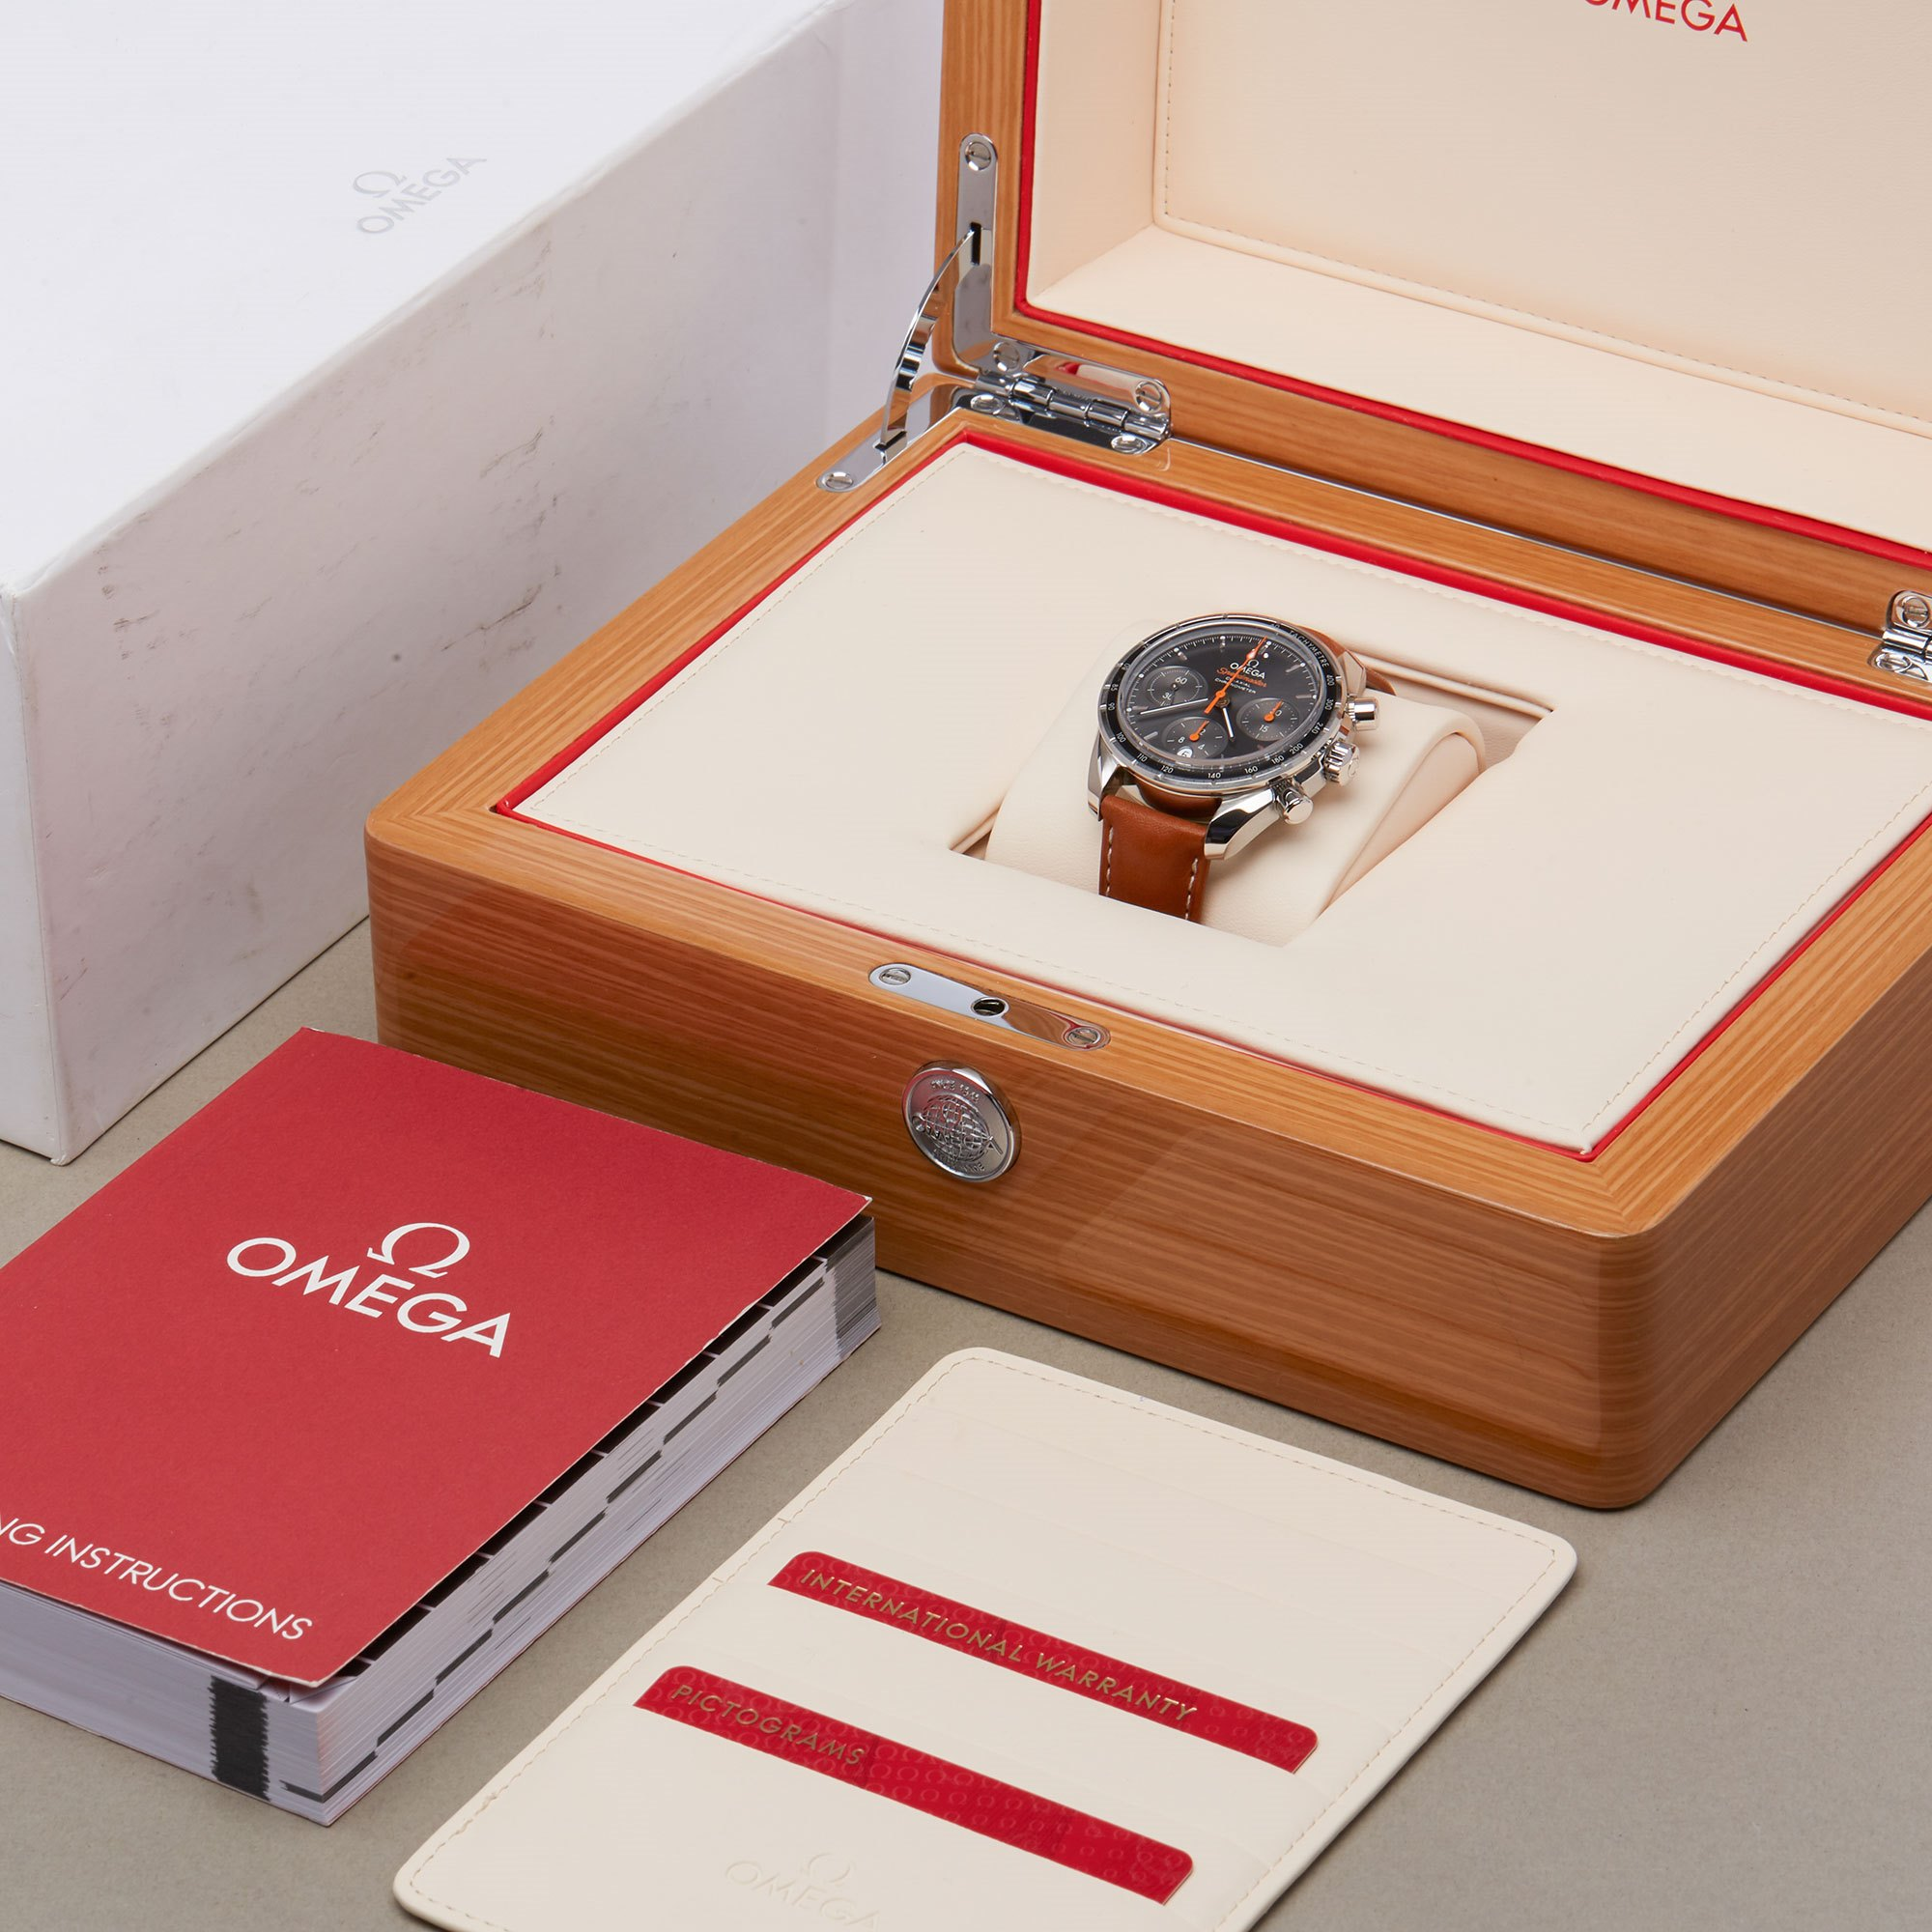 Omega Speedmaster Co-Axial Chronograph Roestvrij Staal 324.32.38.50.06.001